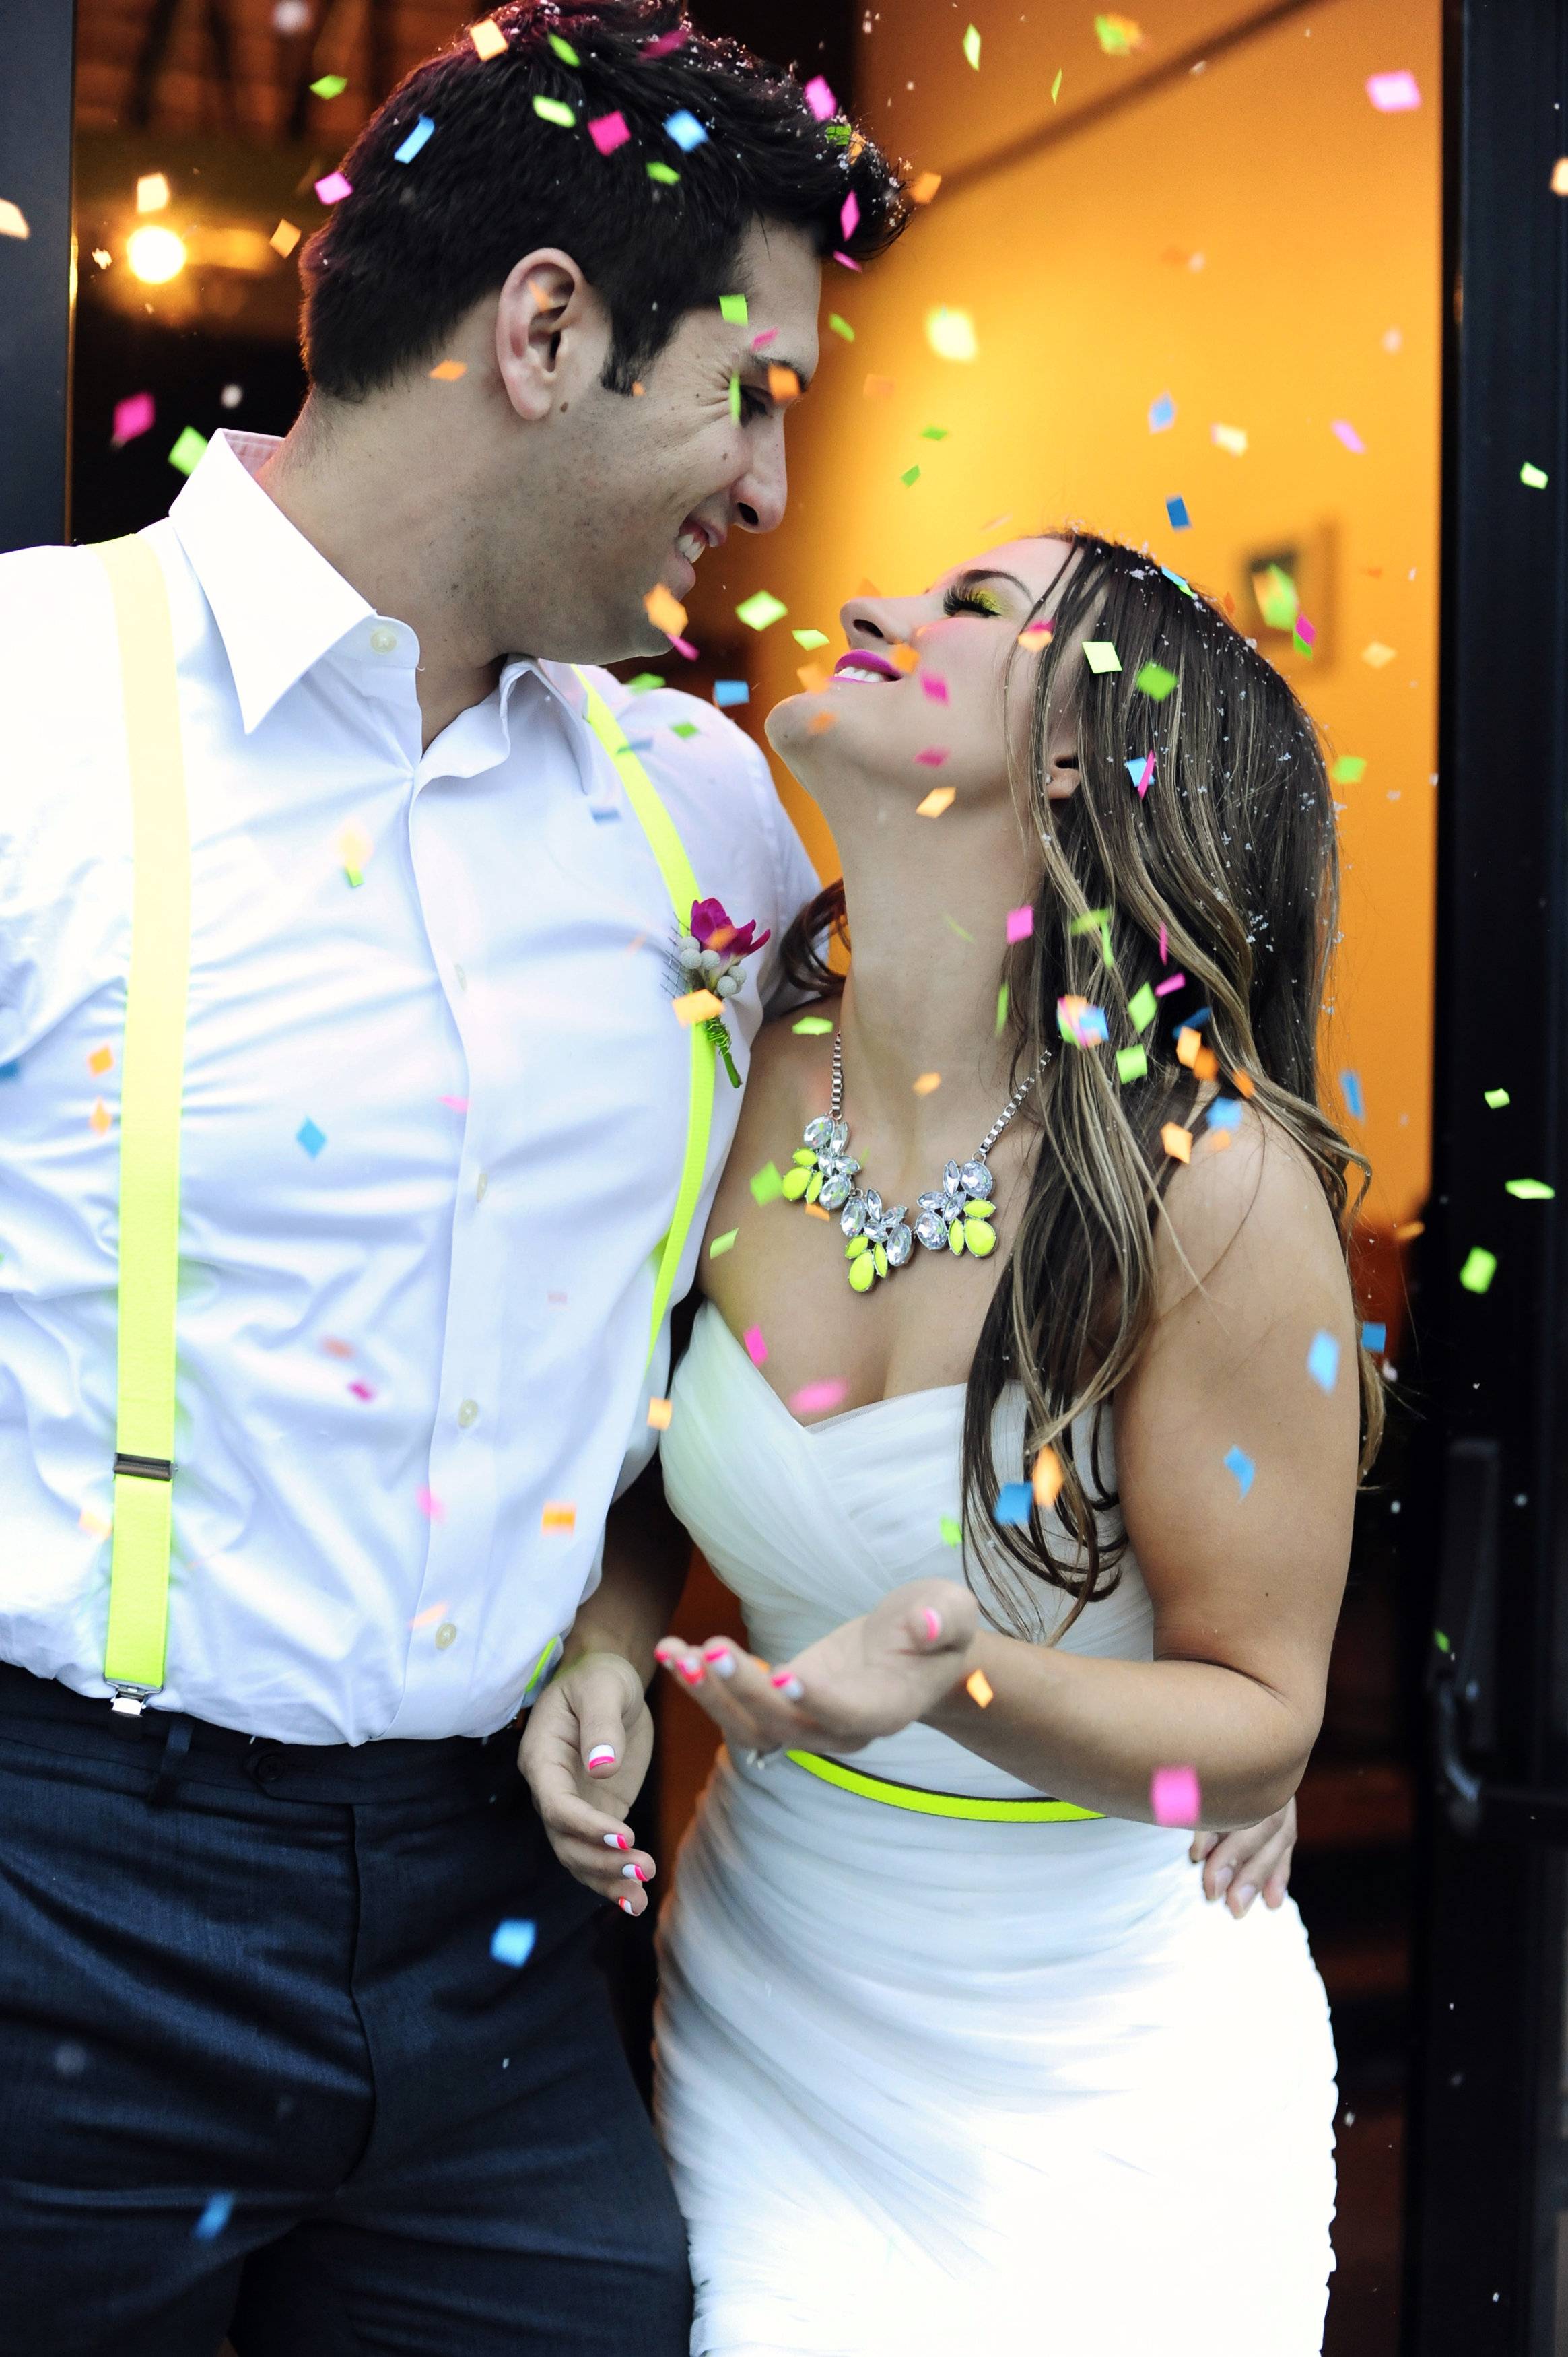 Neon Wedding Inspiration-Neon Submission-0014.jpg